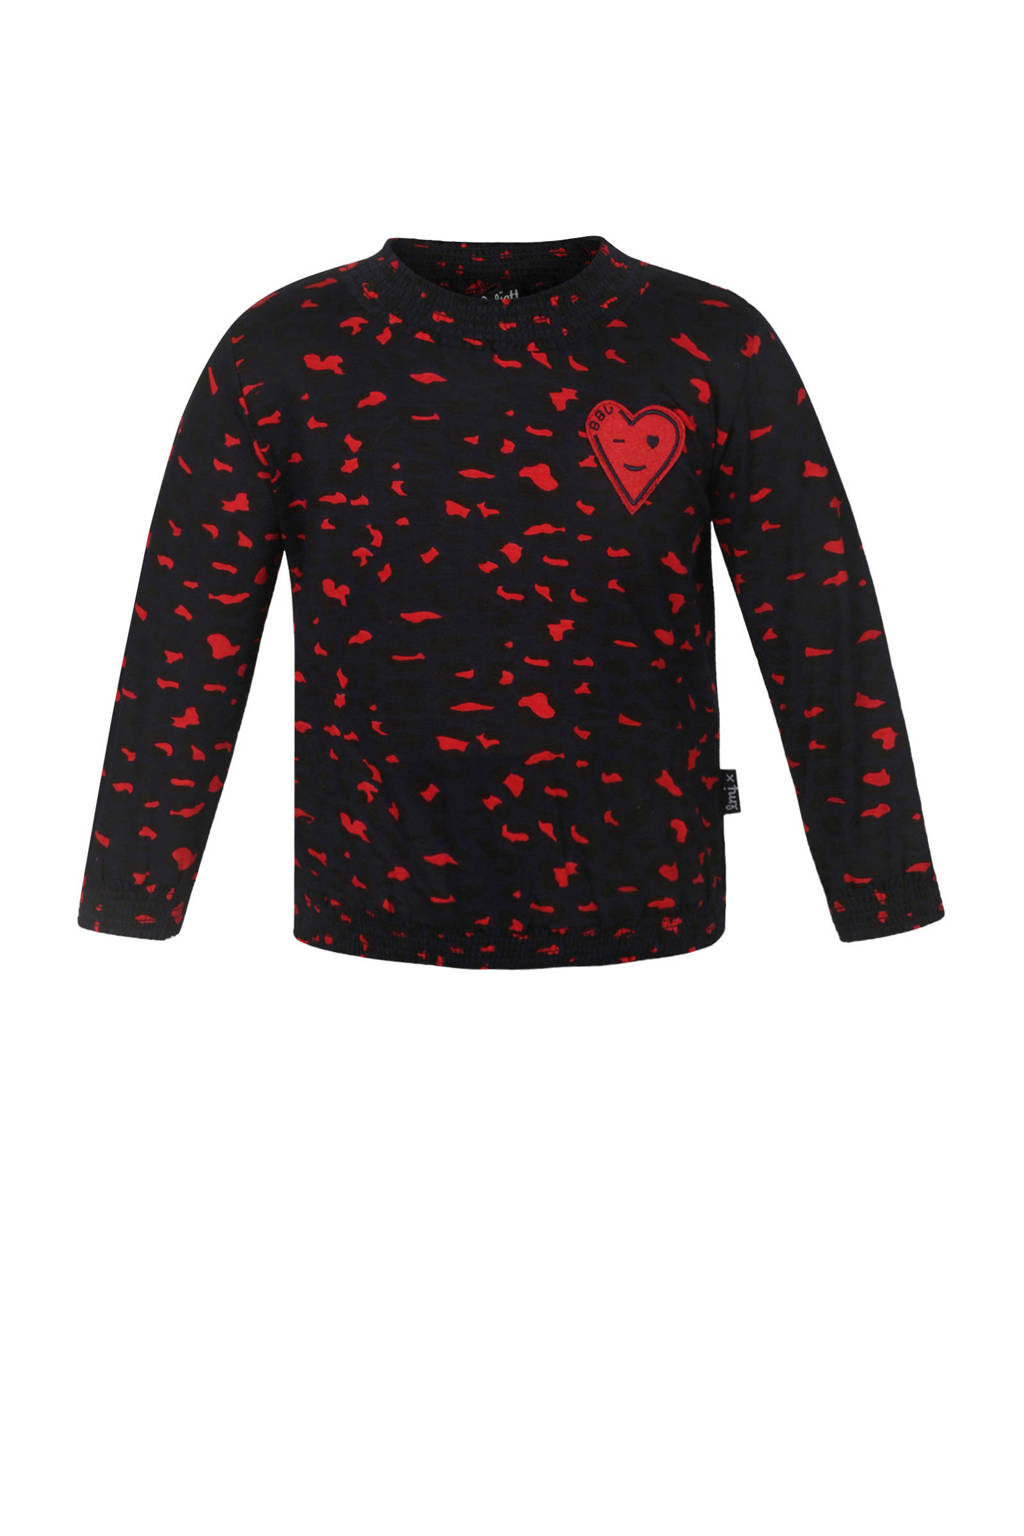 Beebielove top met all over print donkerblauw/rood, Donkerblauw/rood